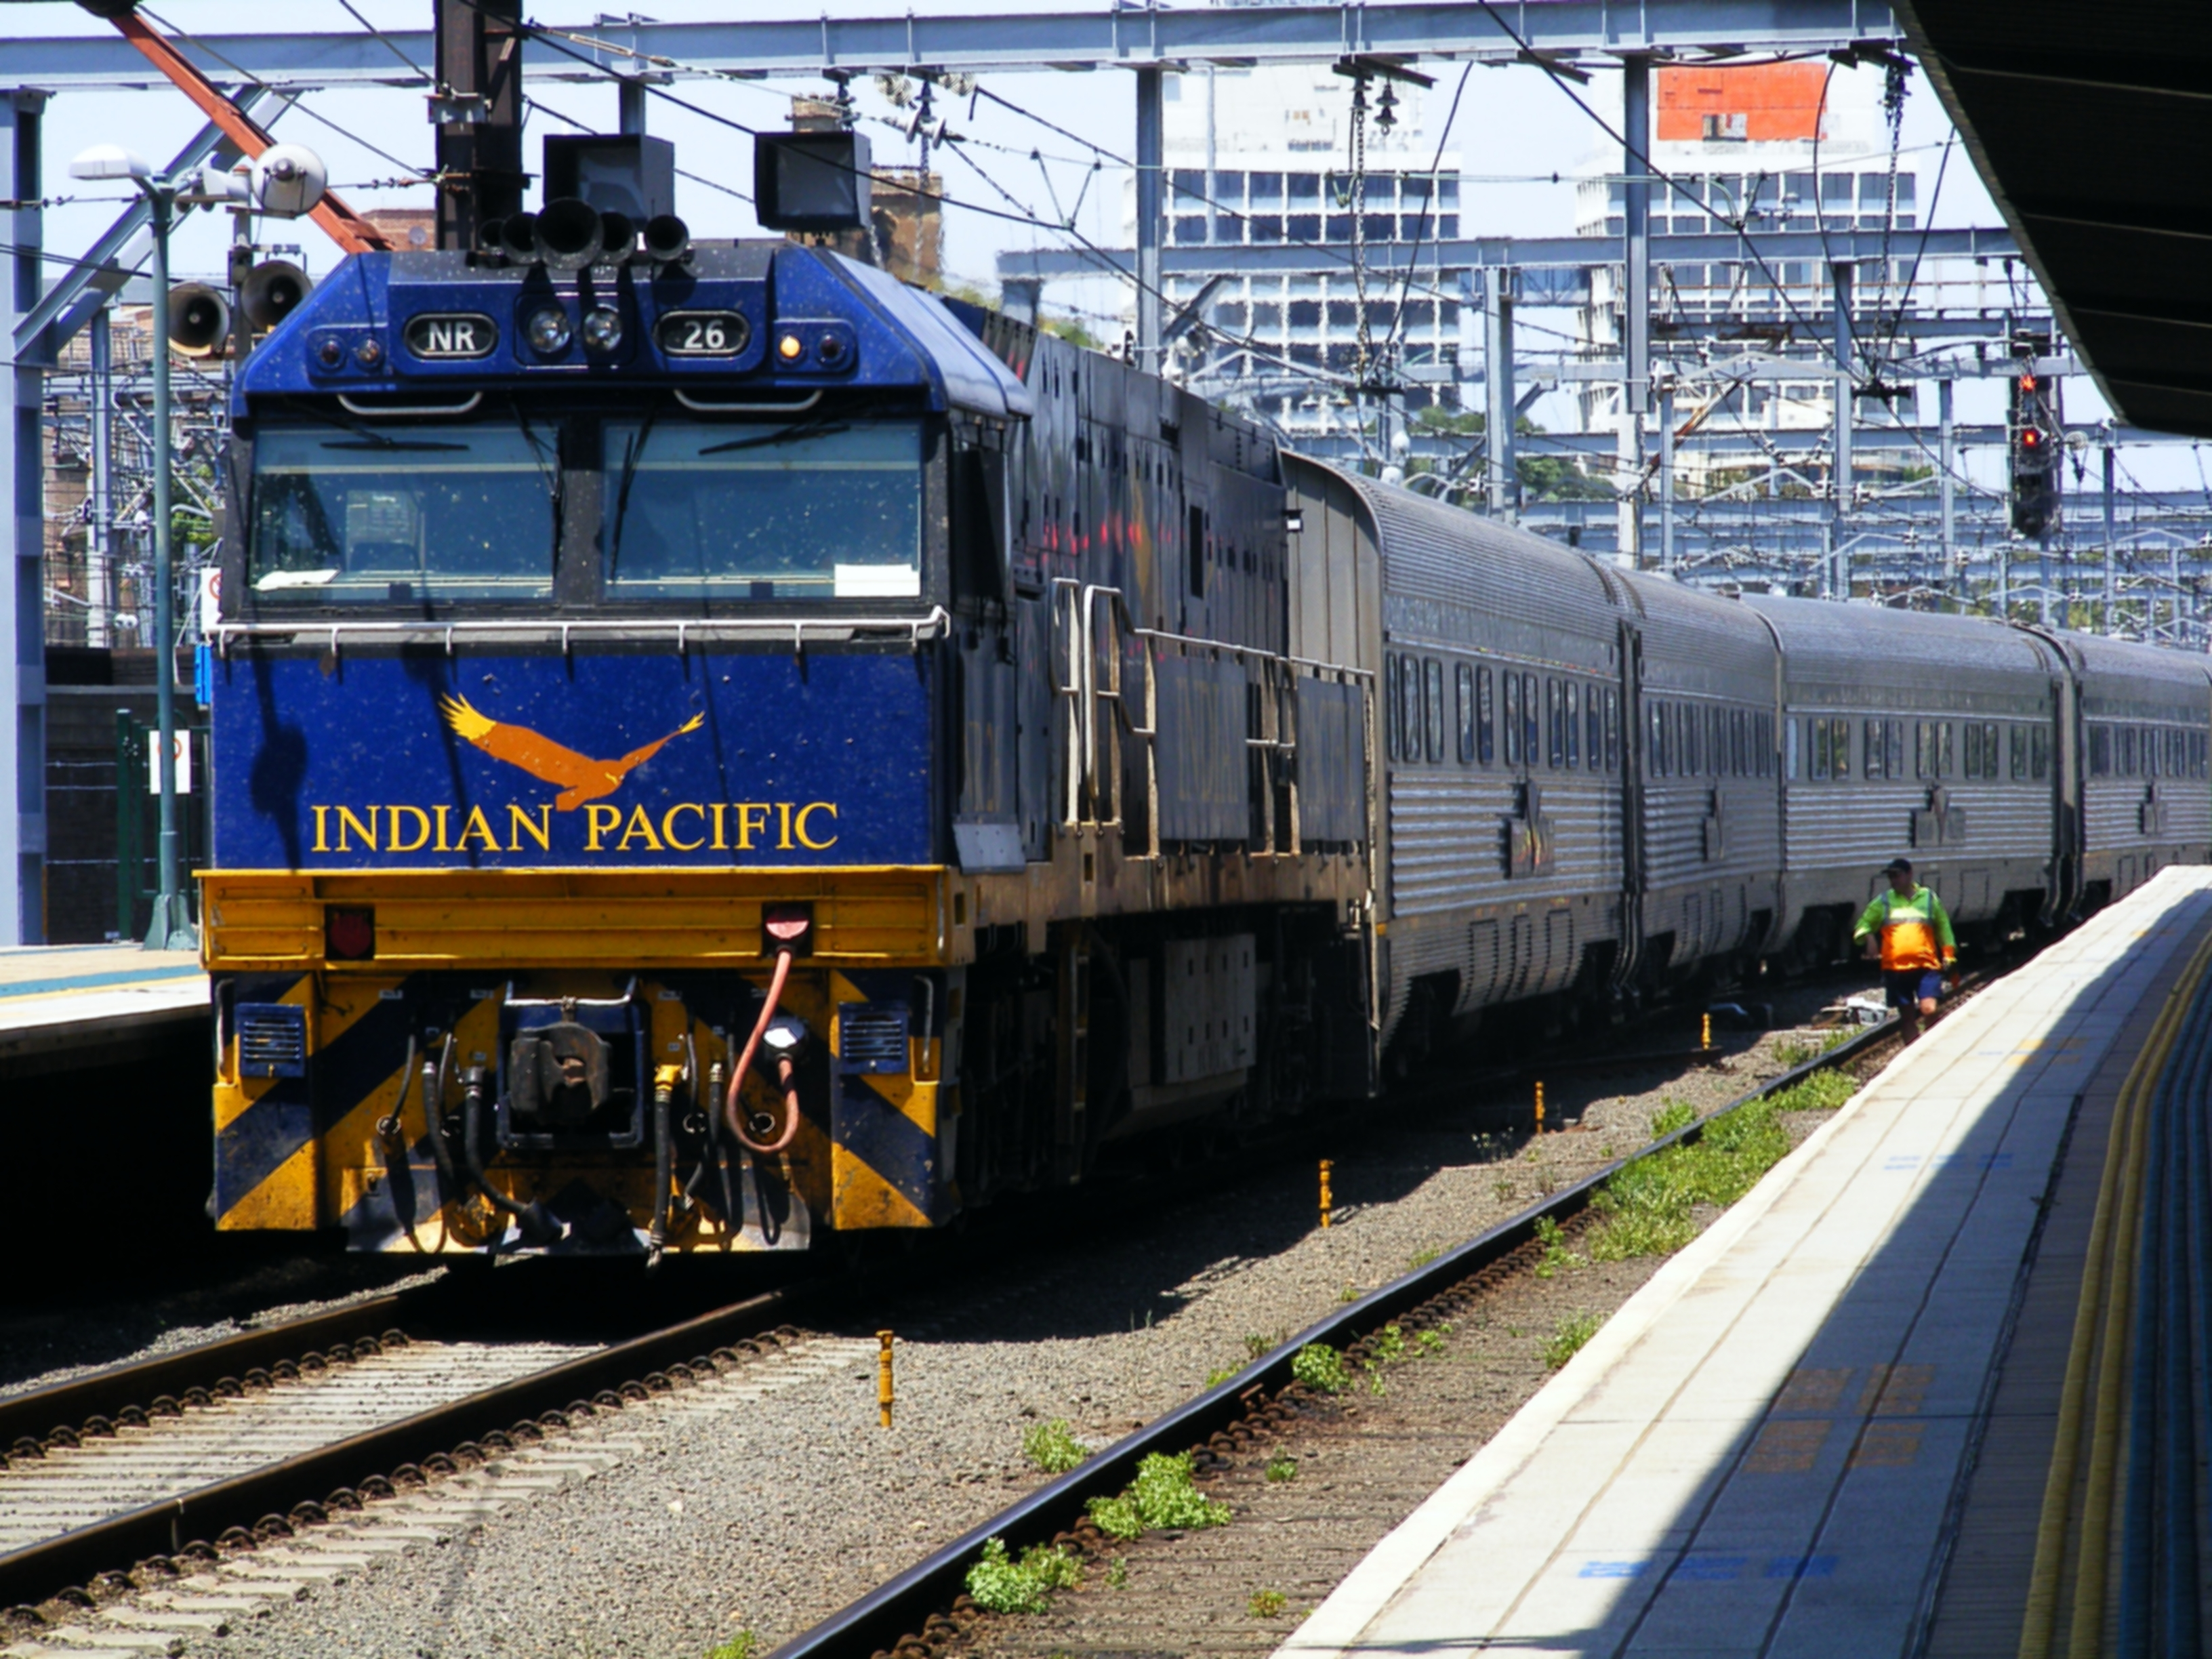 Indian Pacific.